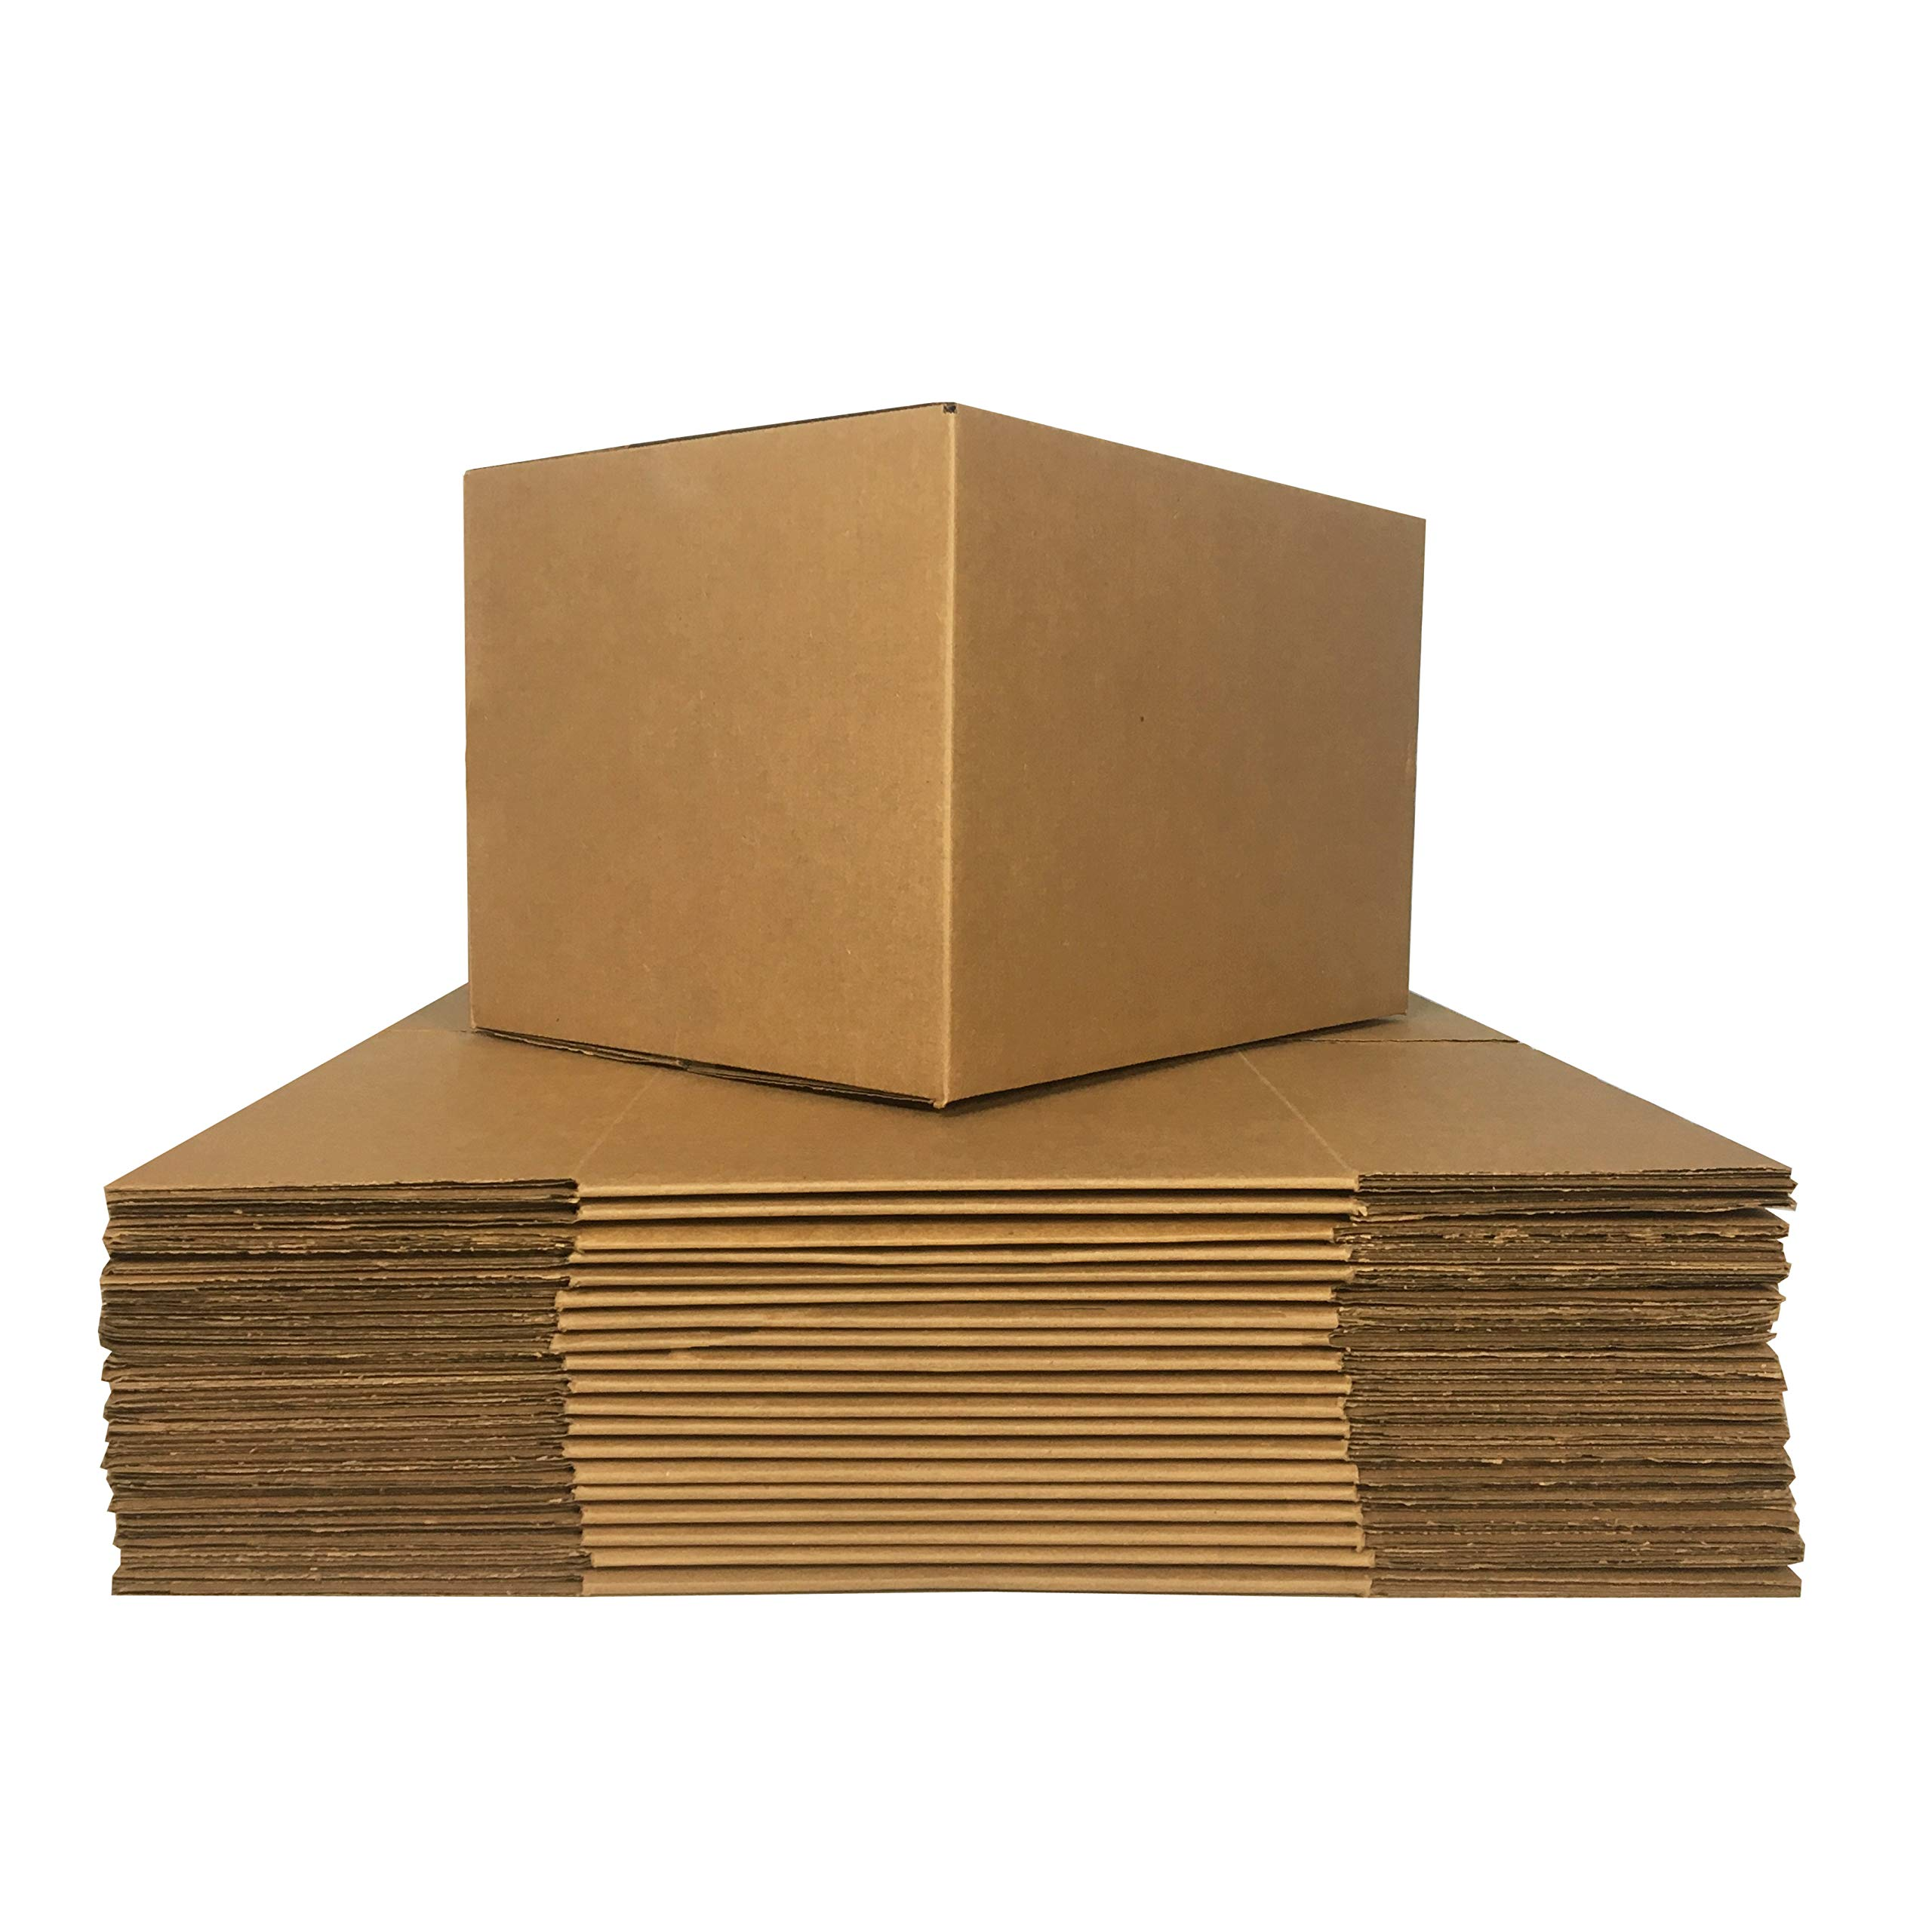 uBoxes Medium Moving Boxes, 18 x 14 x 12 inch, 10 Pack, Cardboard Box (BOXMINIMED10) by Uboxes (Image #3)